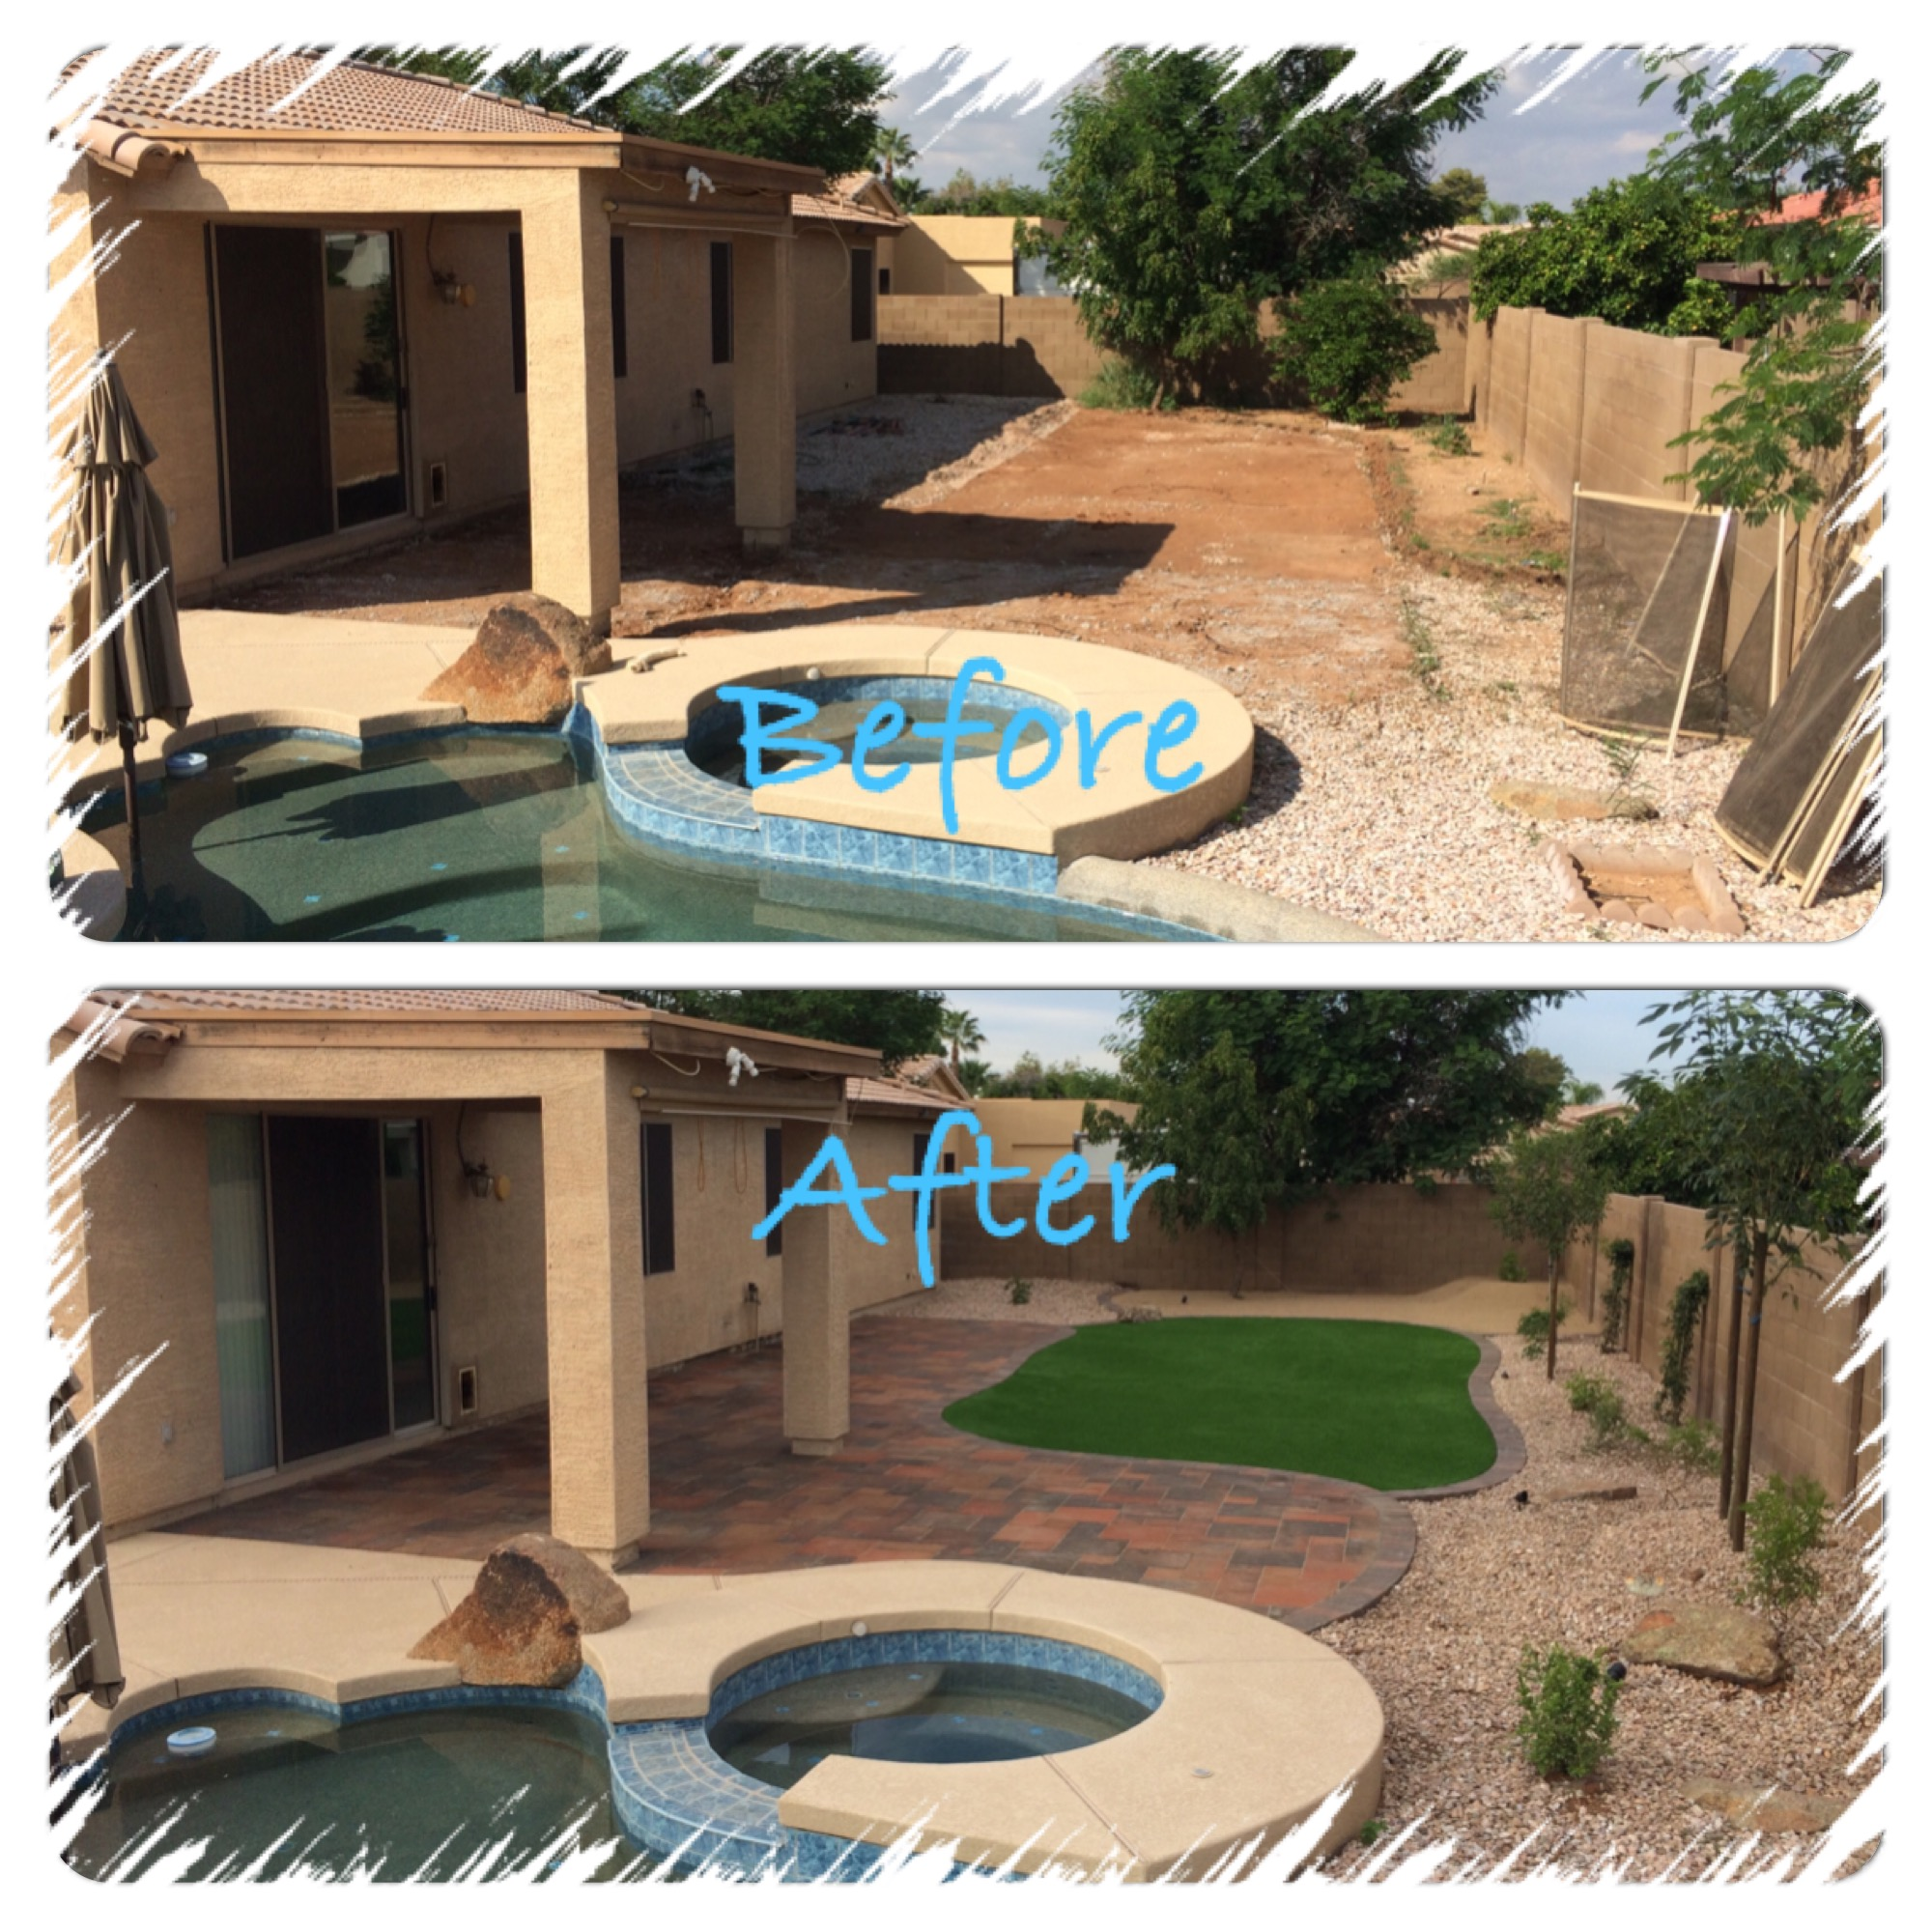 Landscape design archives arizona living landscape design for Outside landscape